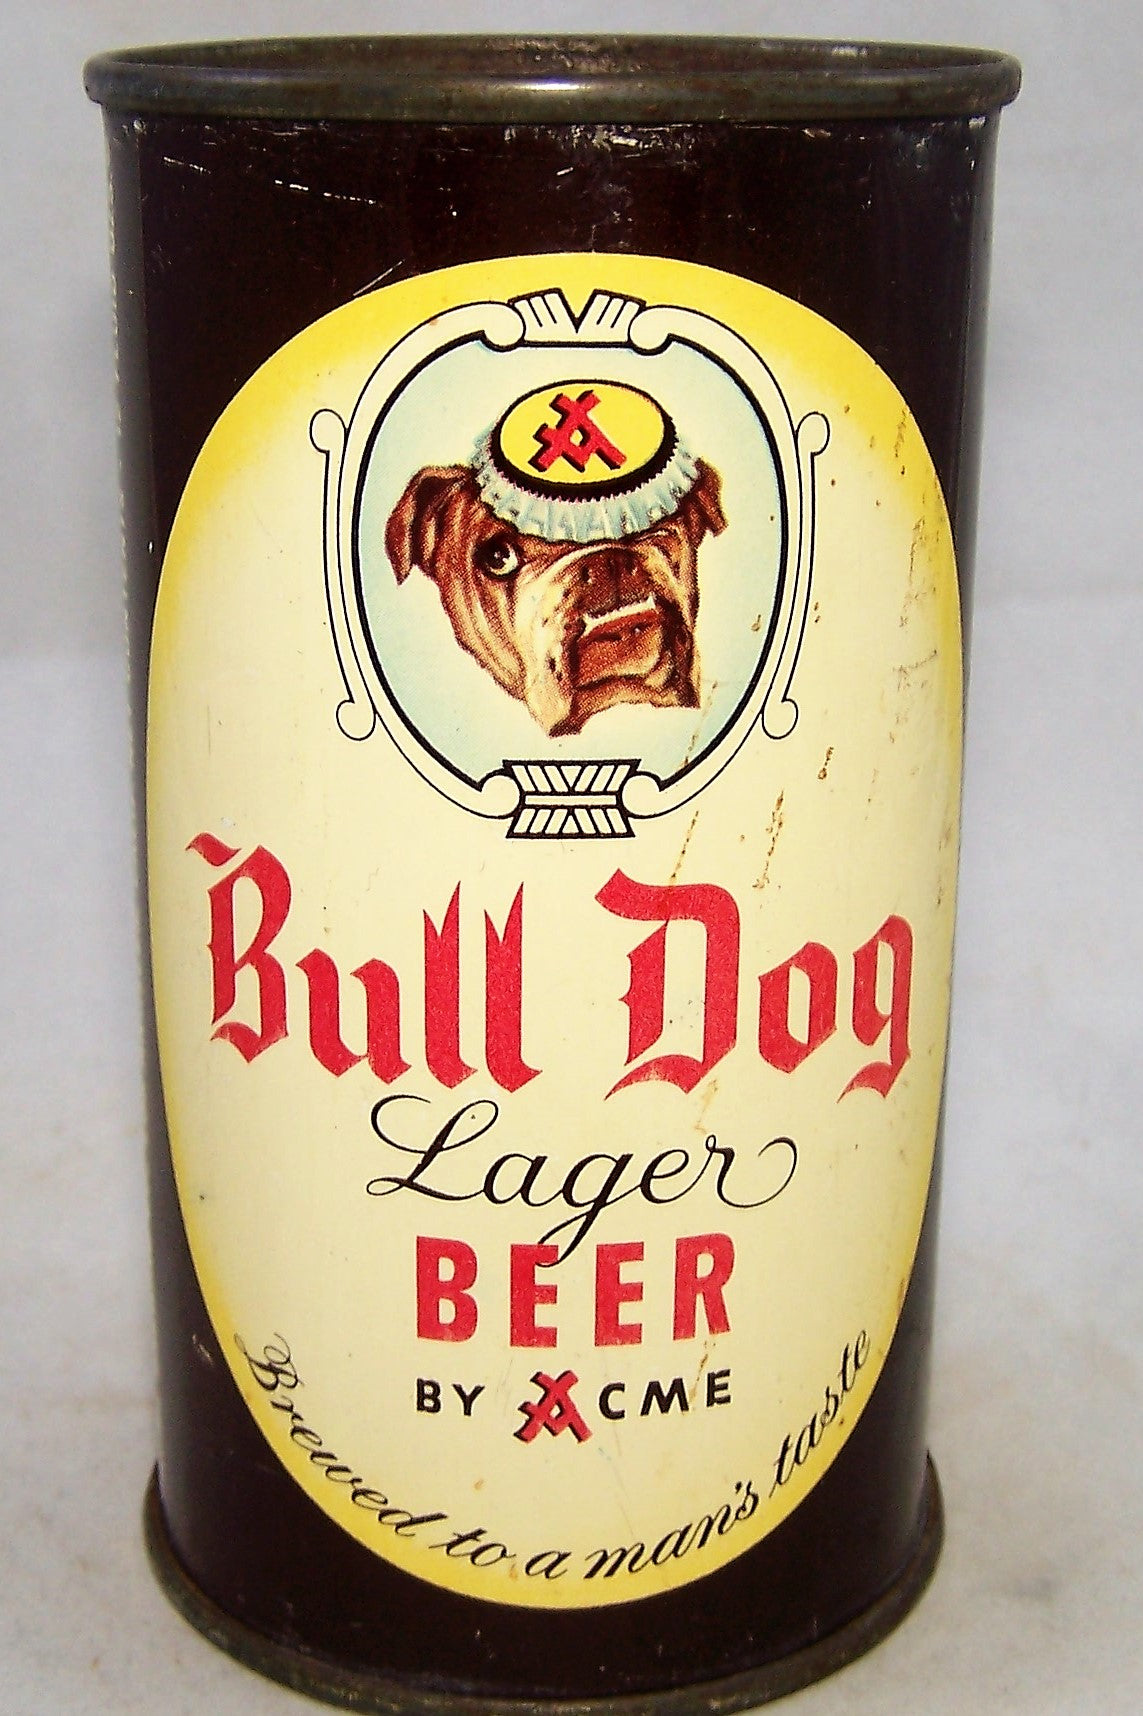 Bull Dog Lager Beer, USBC 45-16, Grade 1- Sold on 07/27/18